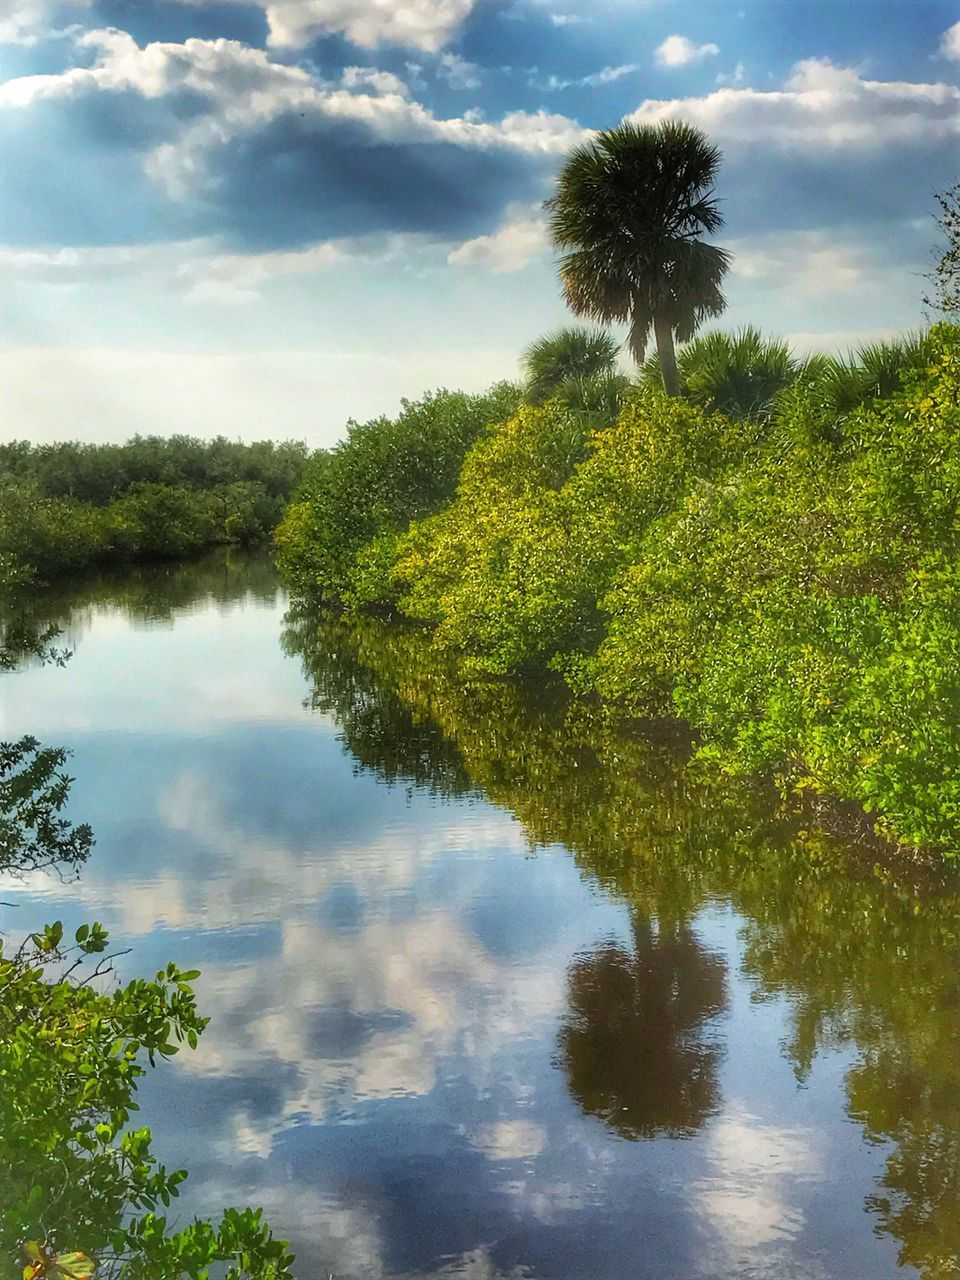 tree, sky, nature, beauty in nature, growth, cloud - sky, reflection, scenics, water, tranquility, green color, tranquil scene, green, outdoors, day, no people, plant, palm tree, leaf